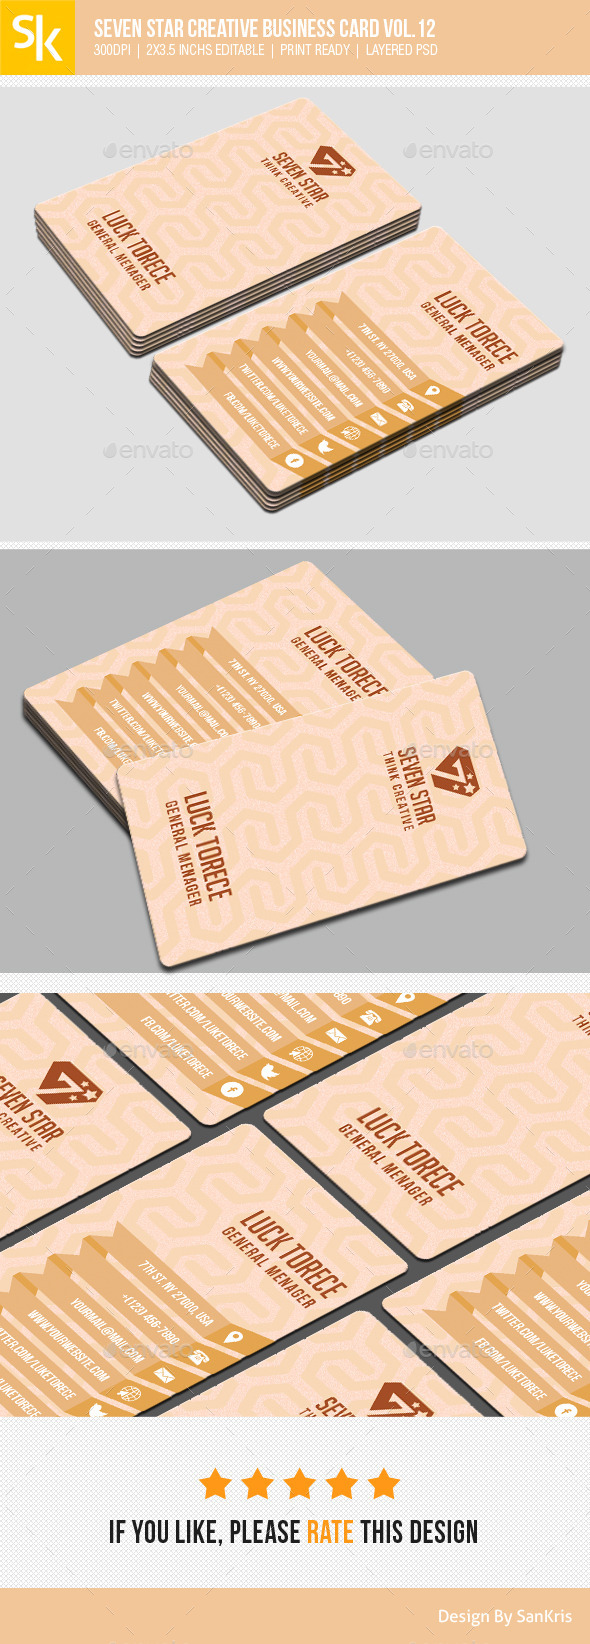 GraphicRiver Seven Star Creative Business Card Vol.12 11211762